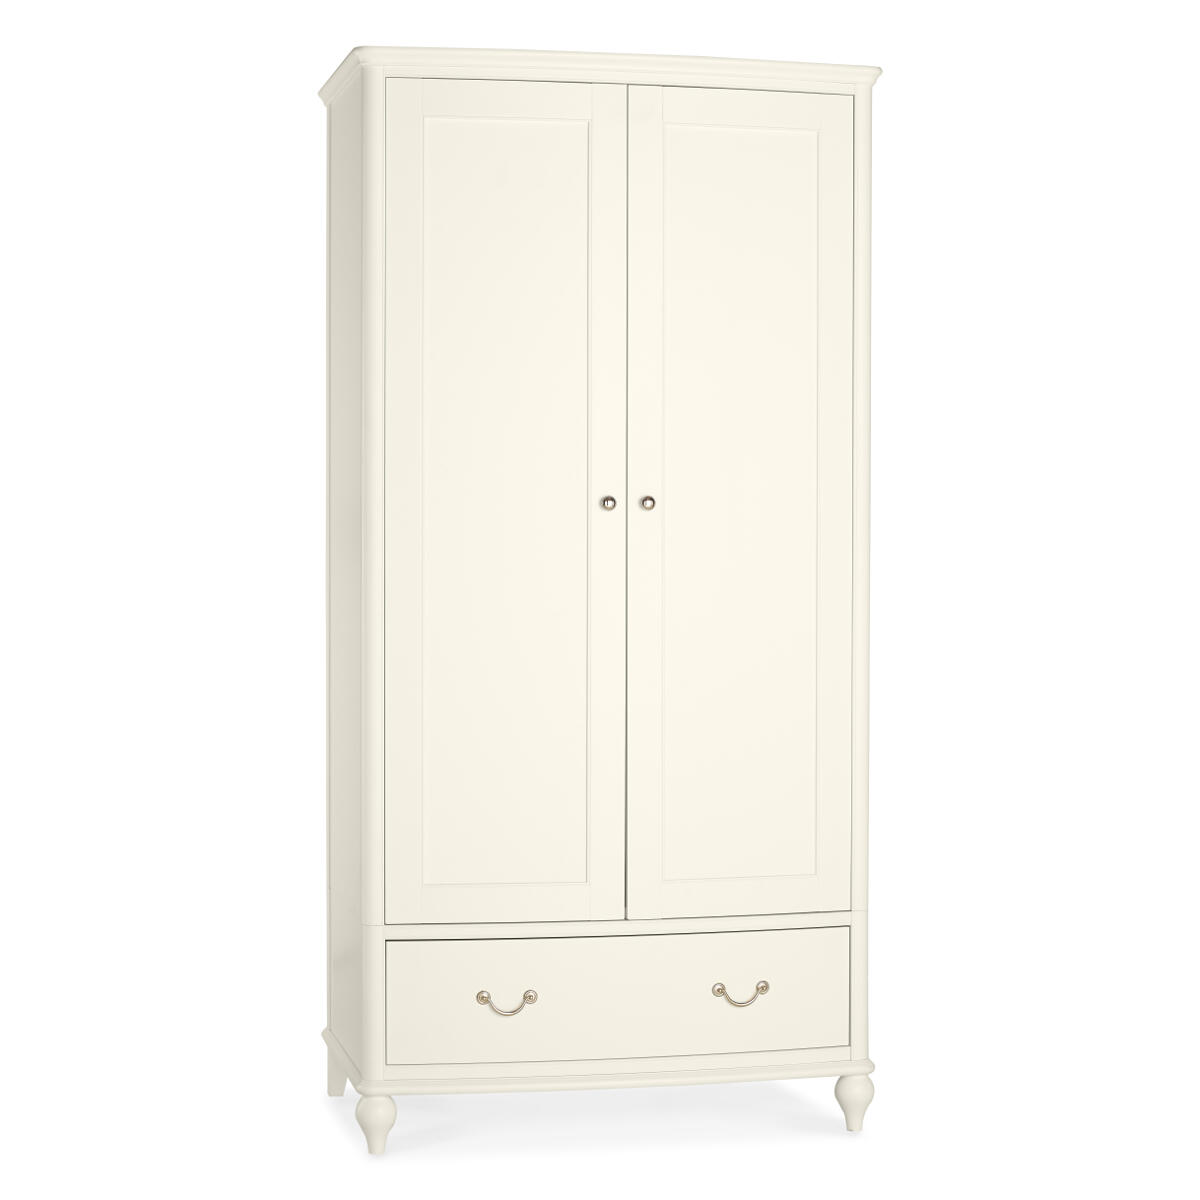 Picardy Double Wardrobe